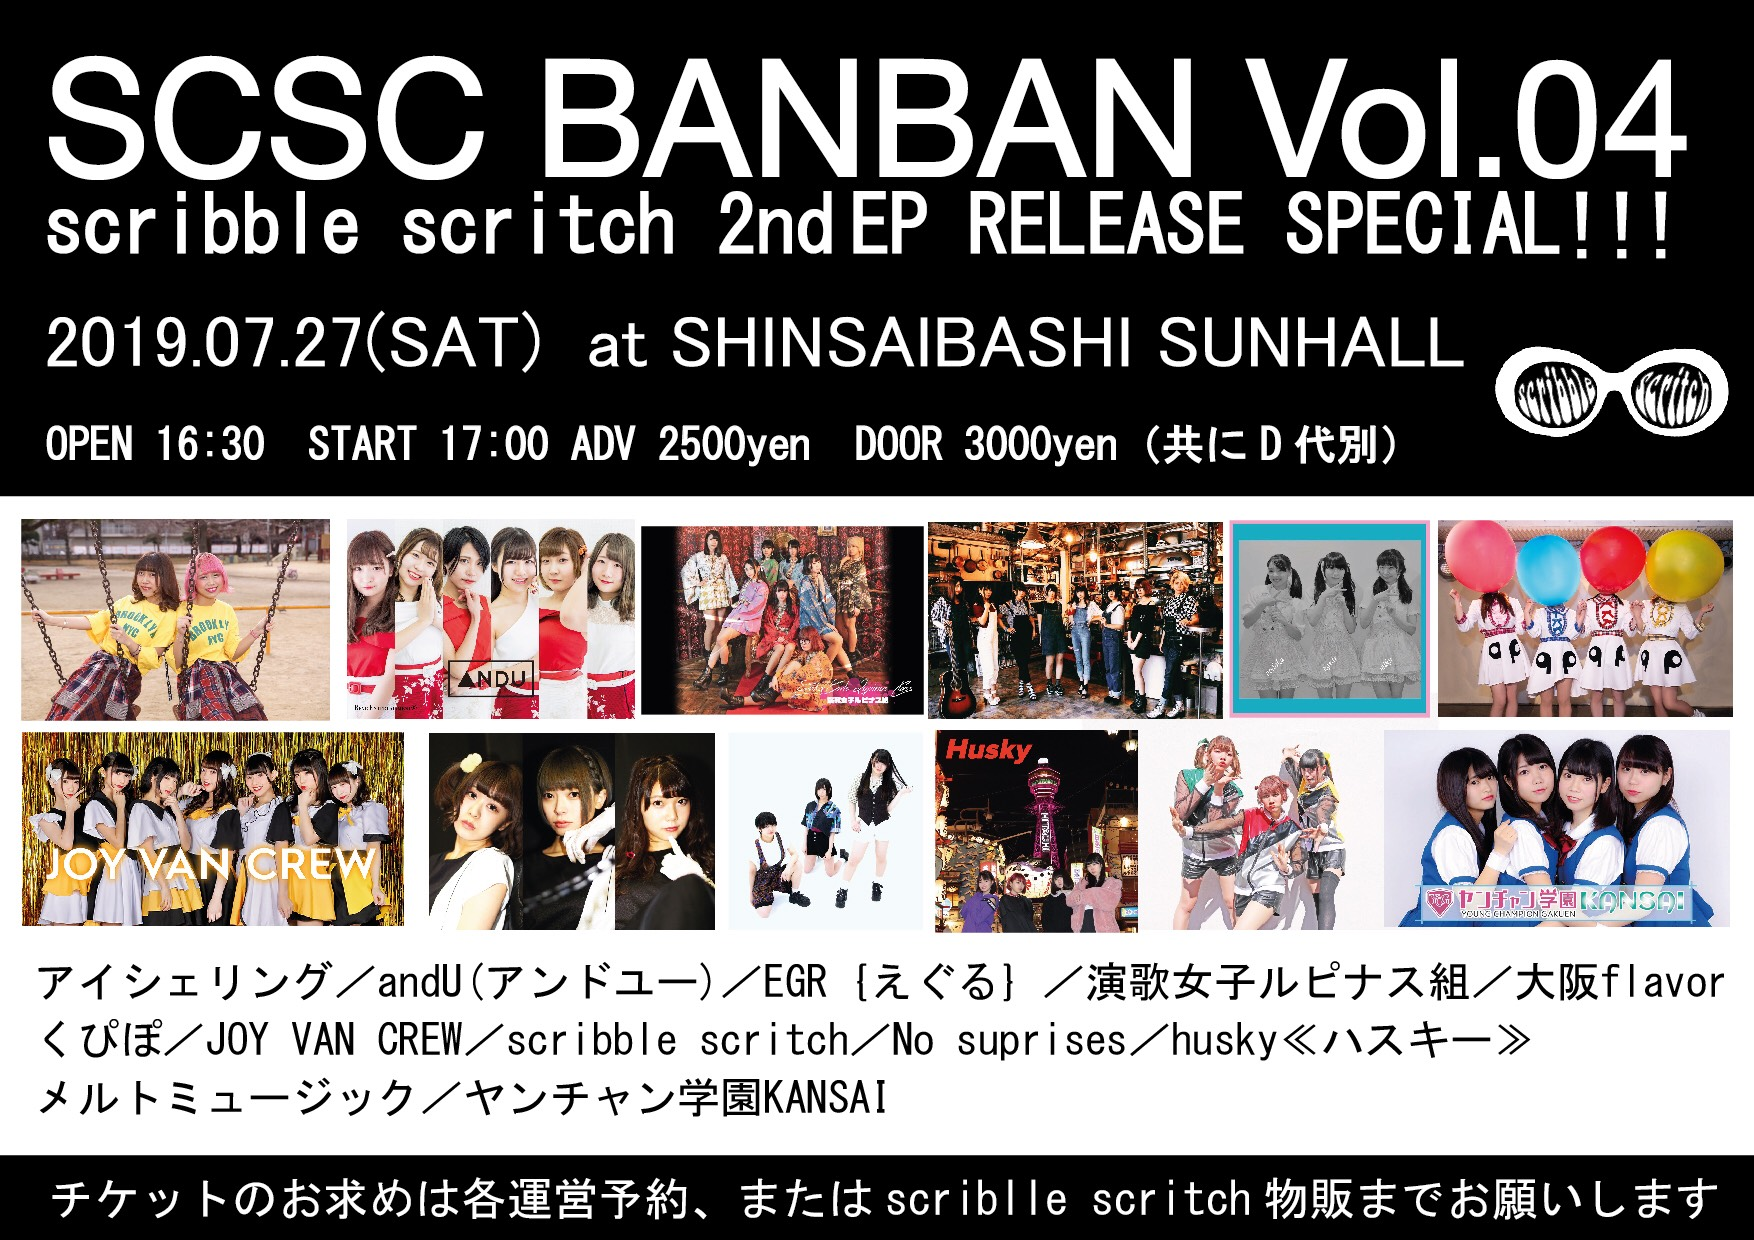 SCSC BANBAN Vol.04 ~scribble scritch 2nd EP リリーススペシャル